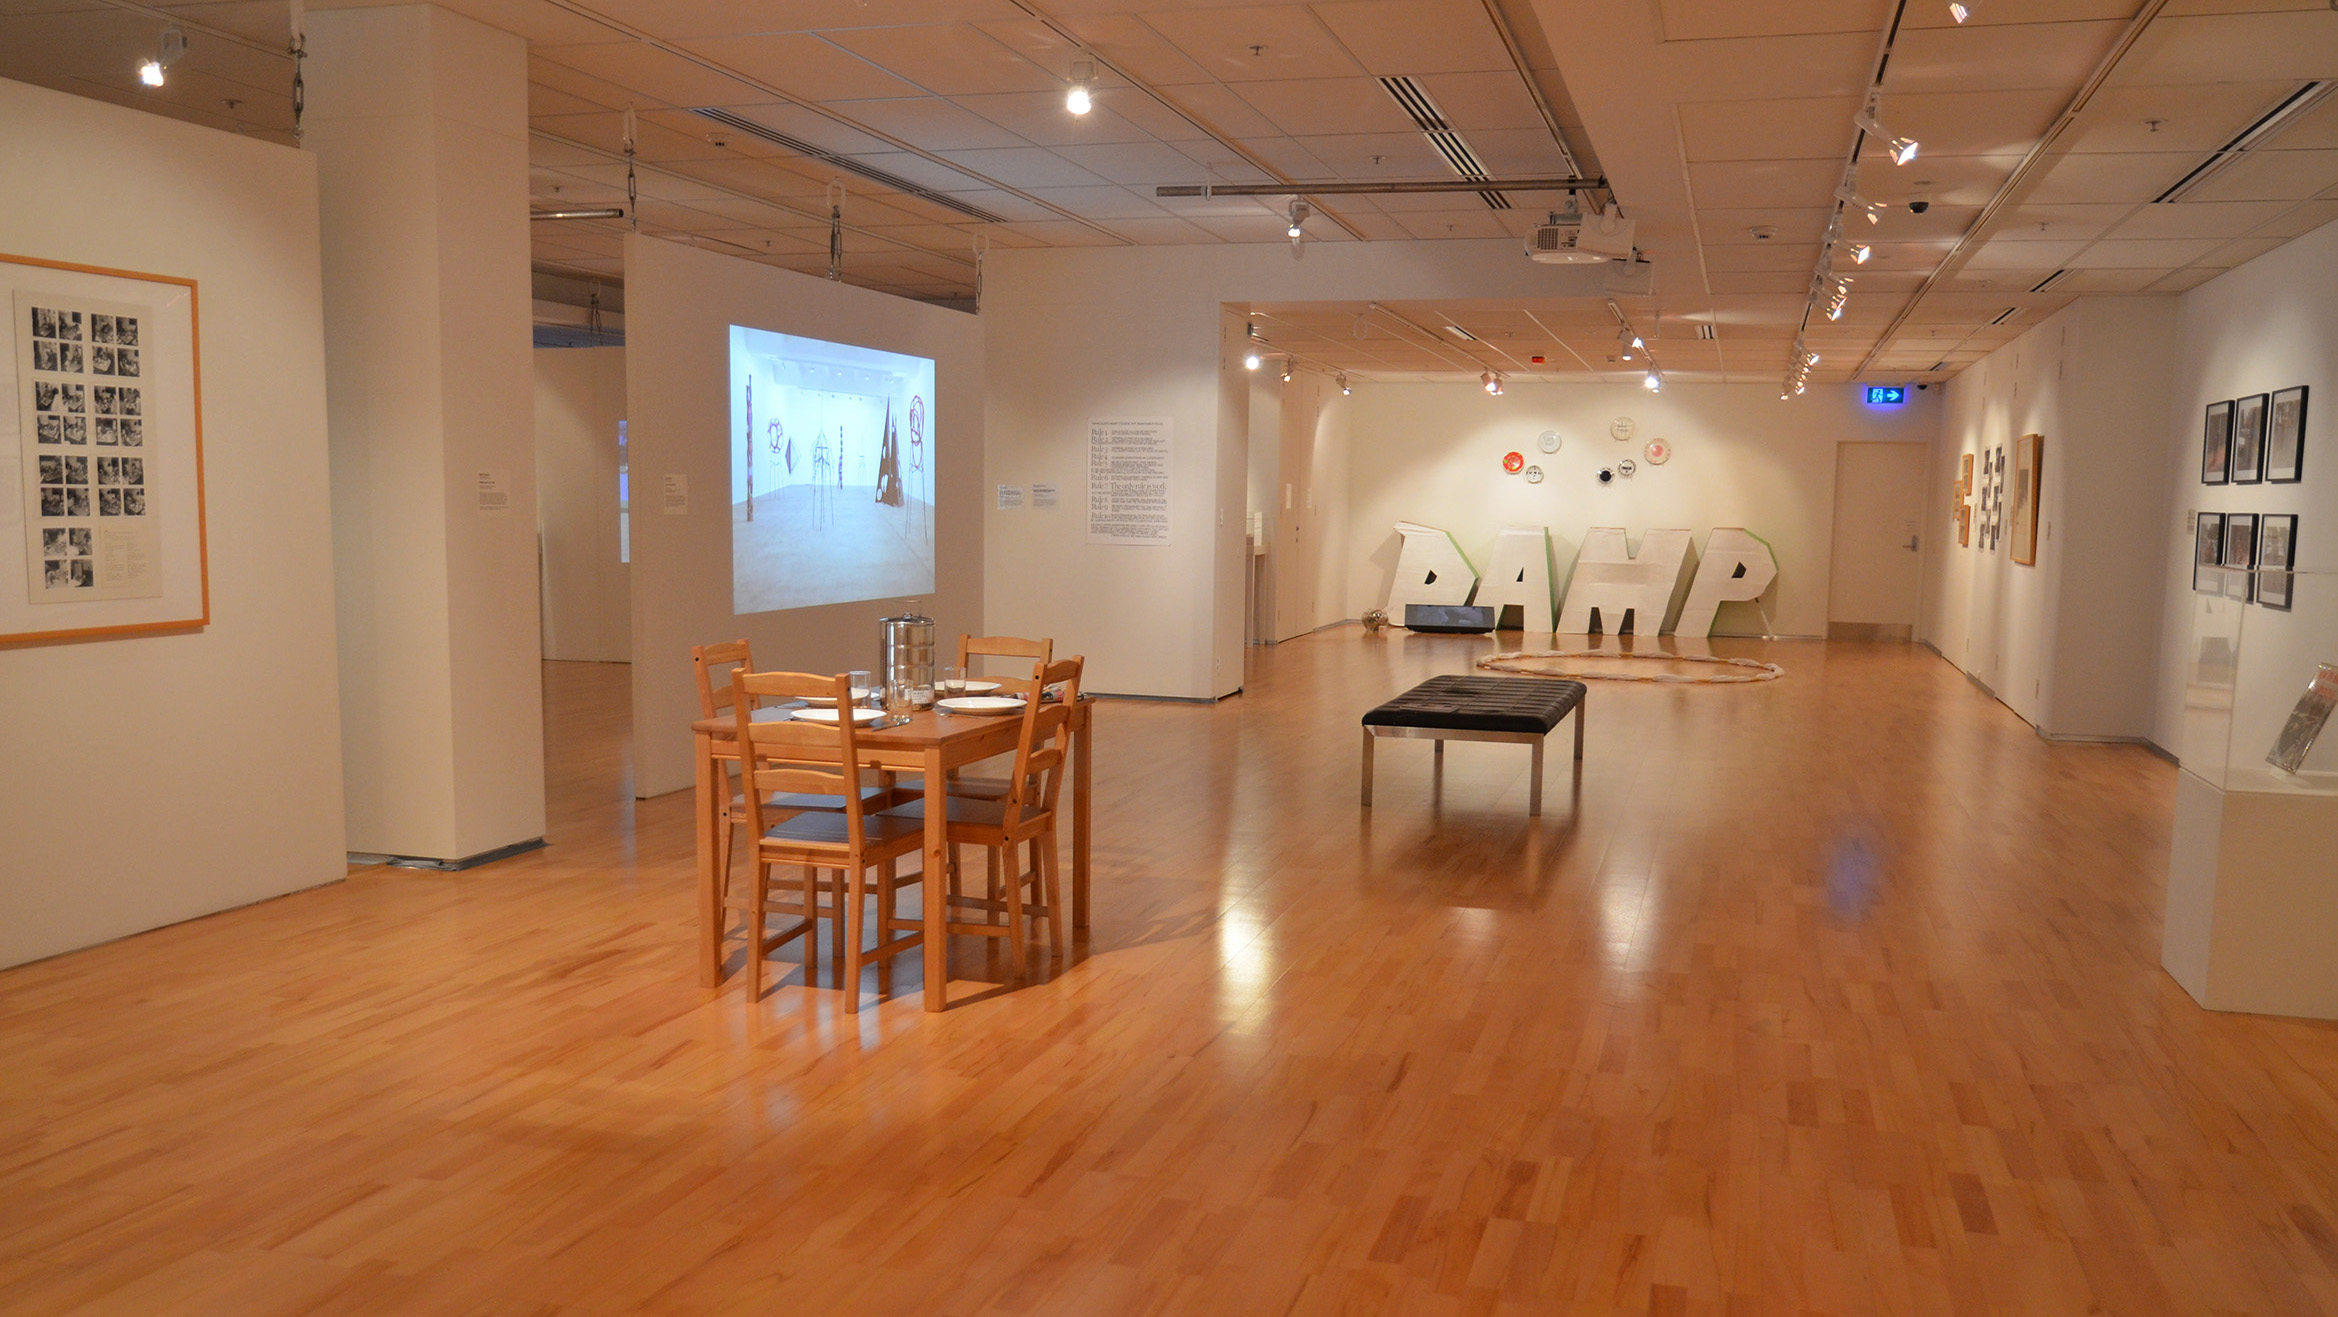 Art as a Verb,  2015, installation view, Flinders University City Gallery, courtesy of the Flinders University Art Museum, Adelaide